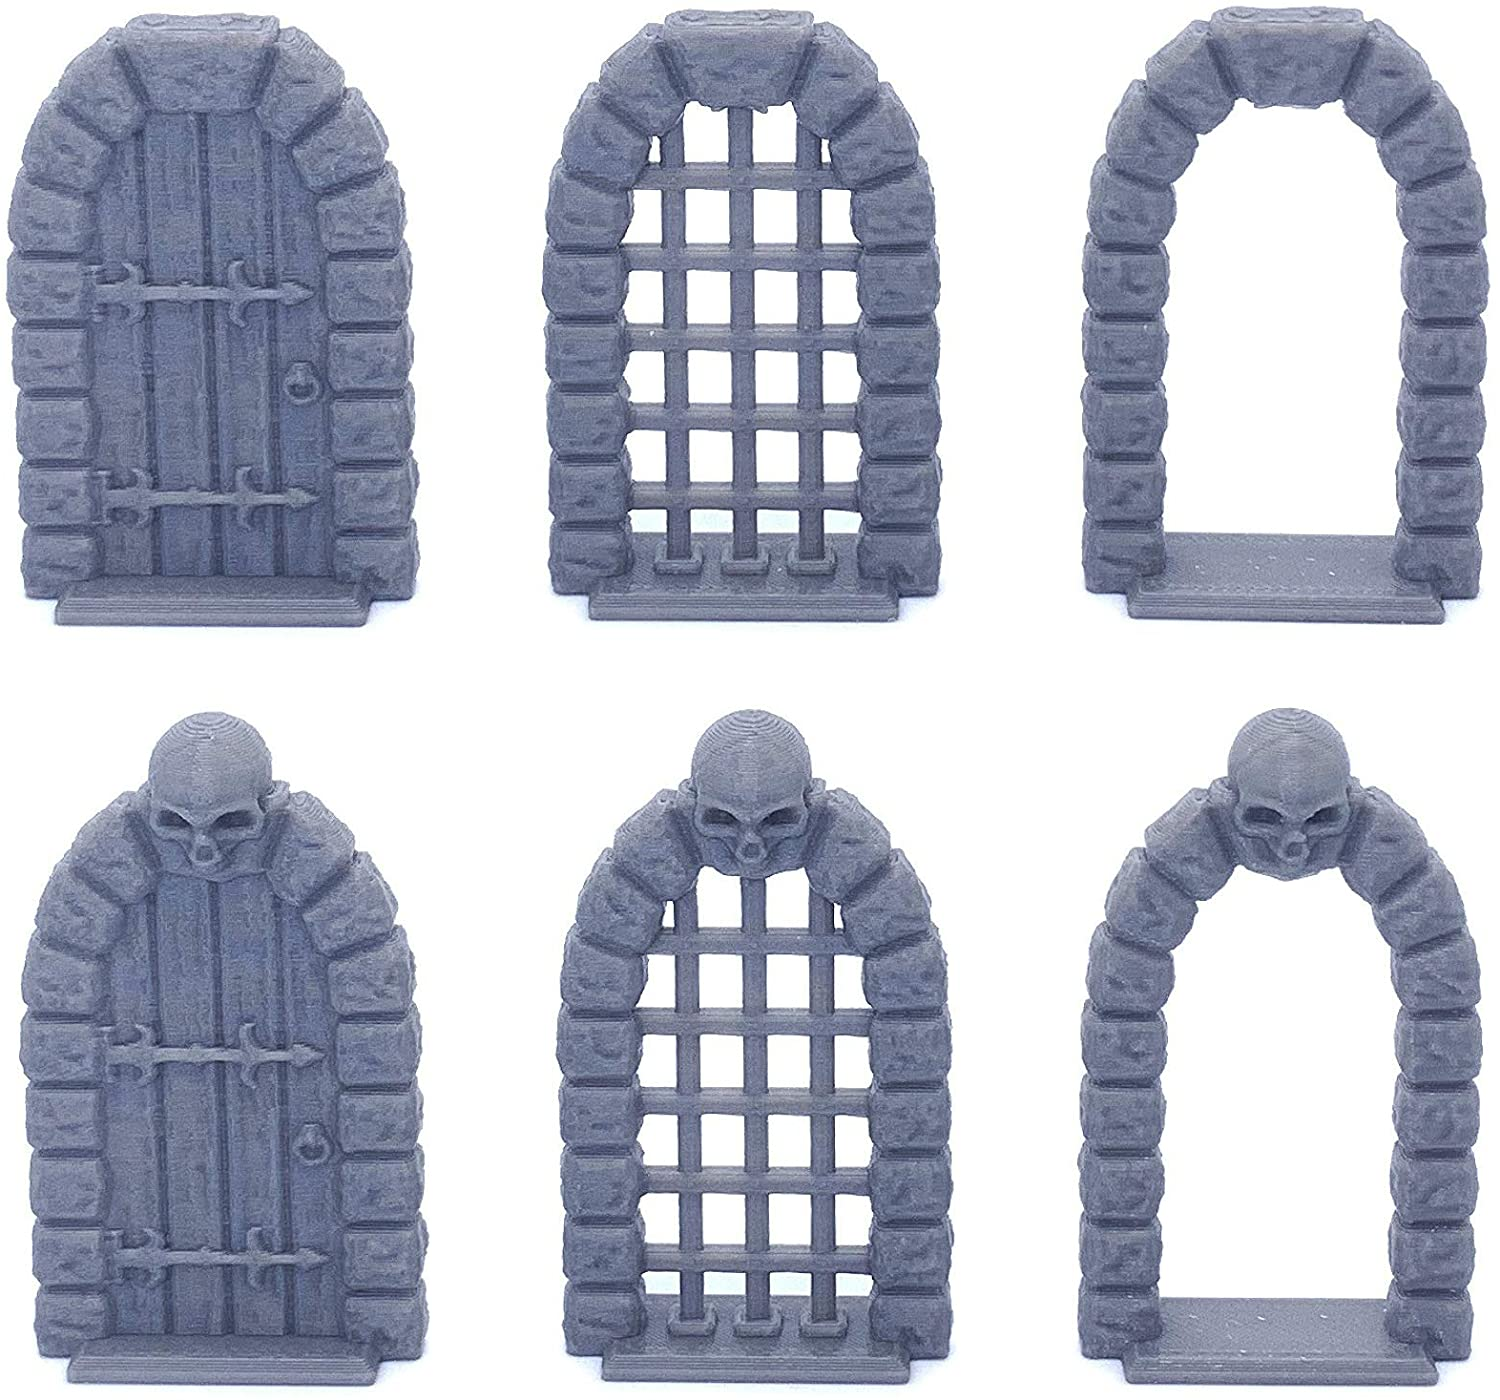 Retro Dungeon Doors, 3D Printed Tabletop RPG Scenery and Wargame Terrain for 28mm Miniatures